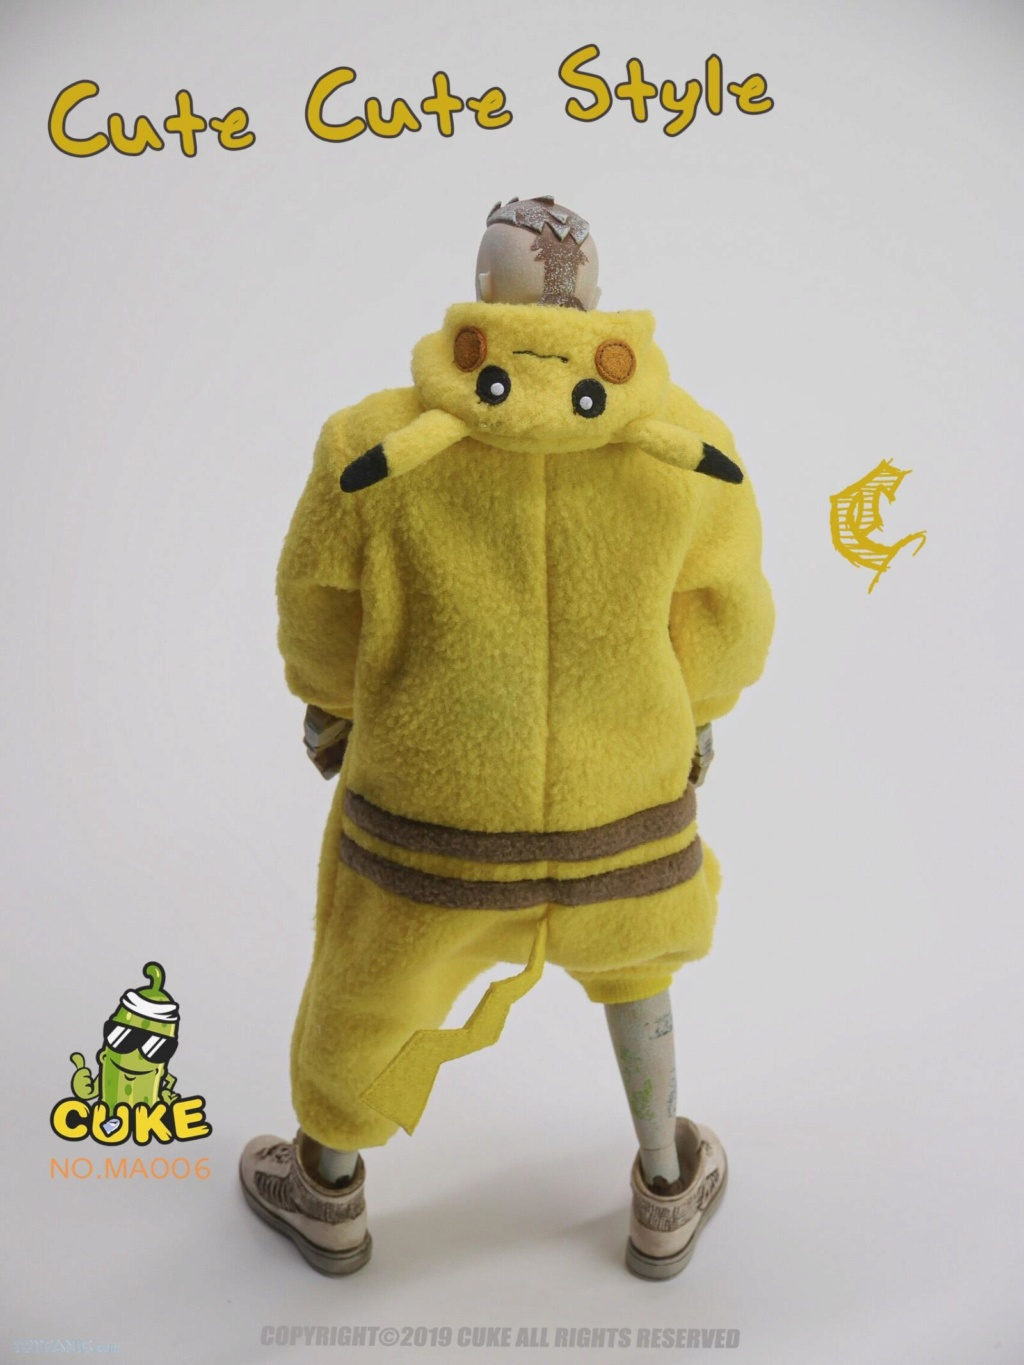 CukeToys - NEW PRODUCT: Cuke Toys: [CK-M006] 1/6 Cute Cute Style 11162016